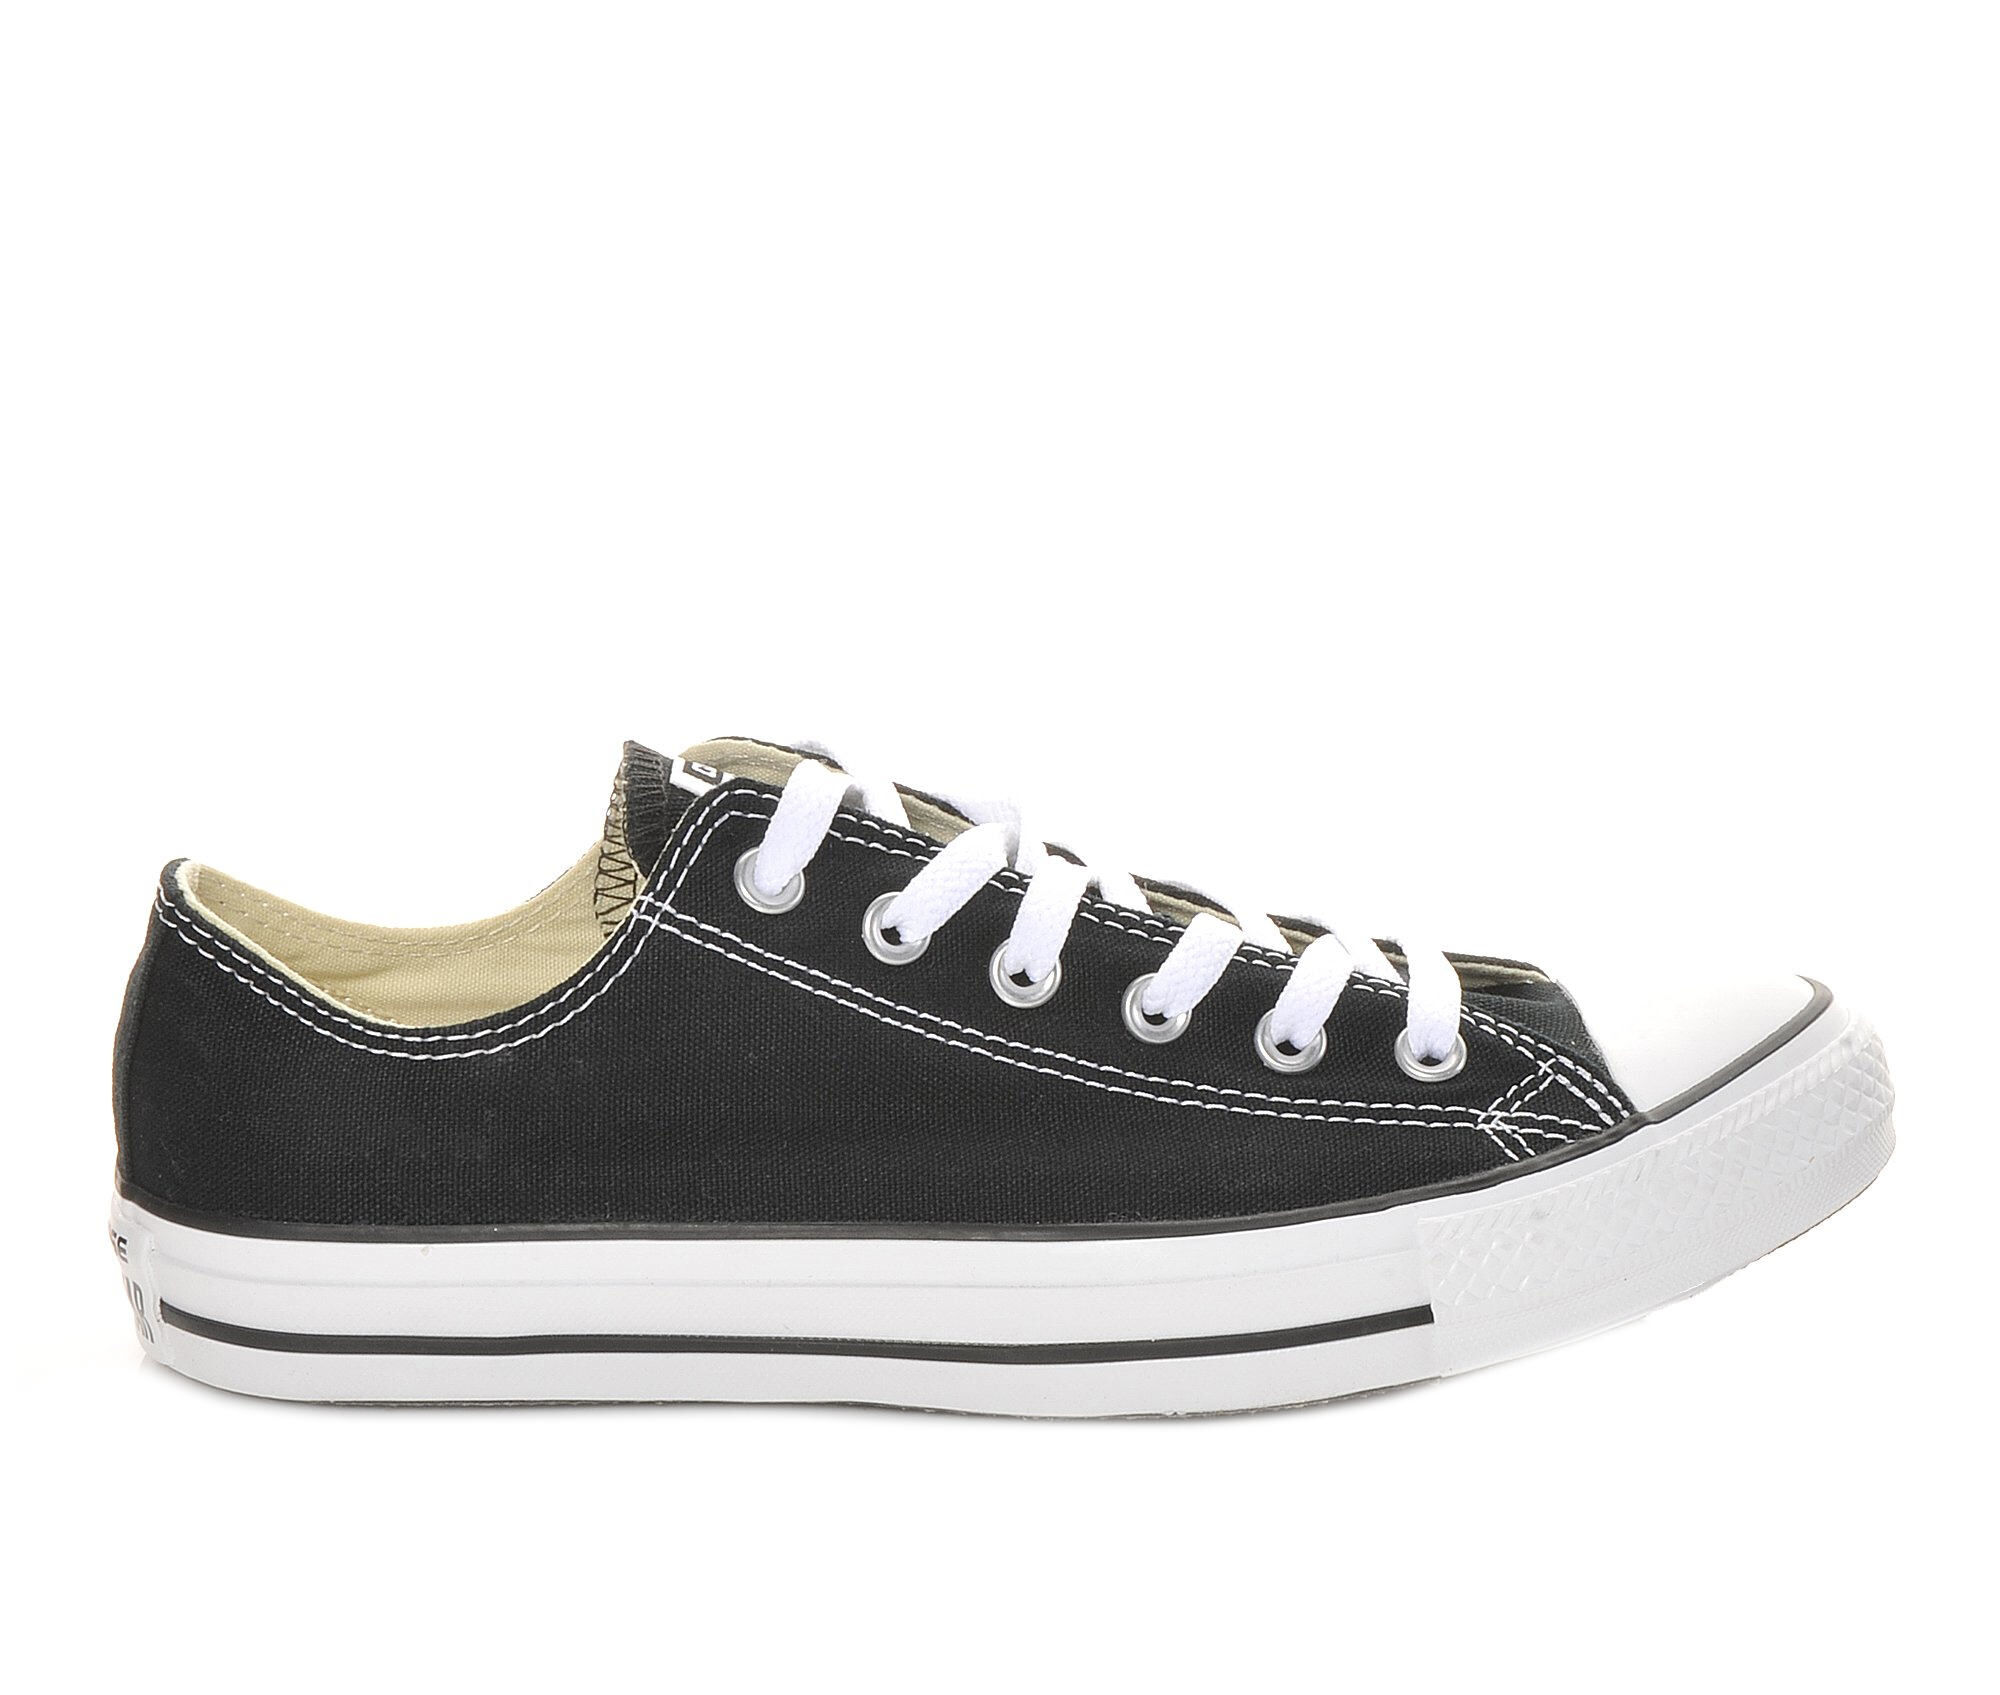 Adults' Converse Chuck Taylor All Star Canvas Ox Core Sneakers Black